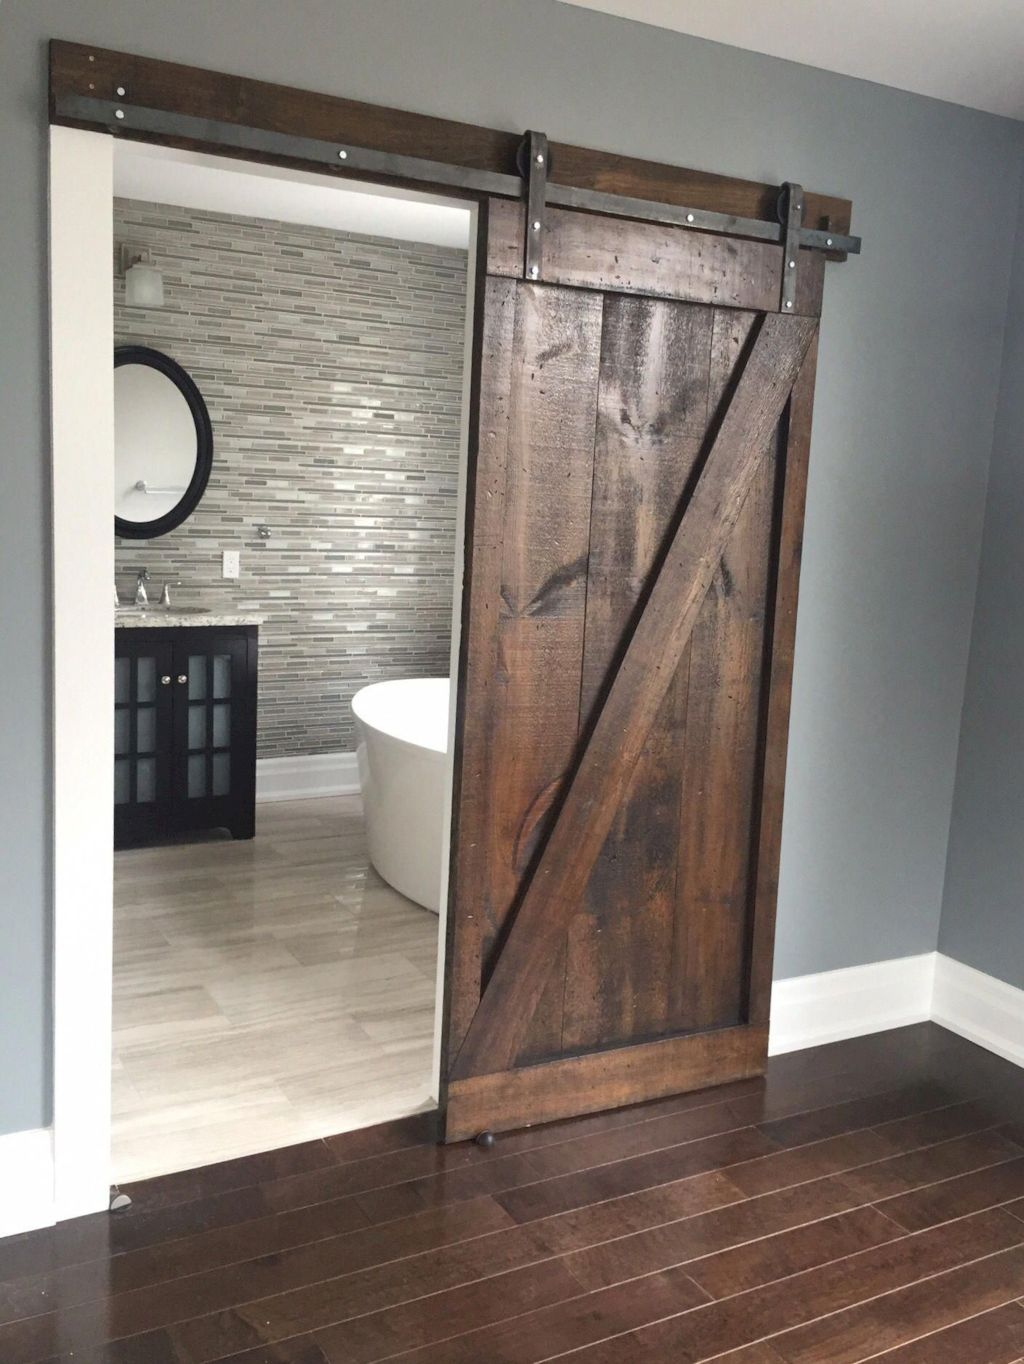 Barn style sliding doors designed for modern rustic home look lovely with traditional finish Image 5